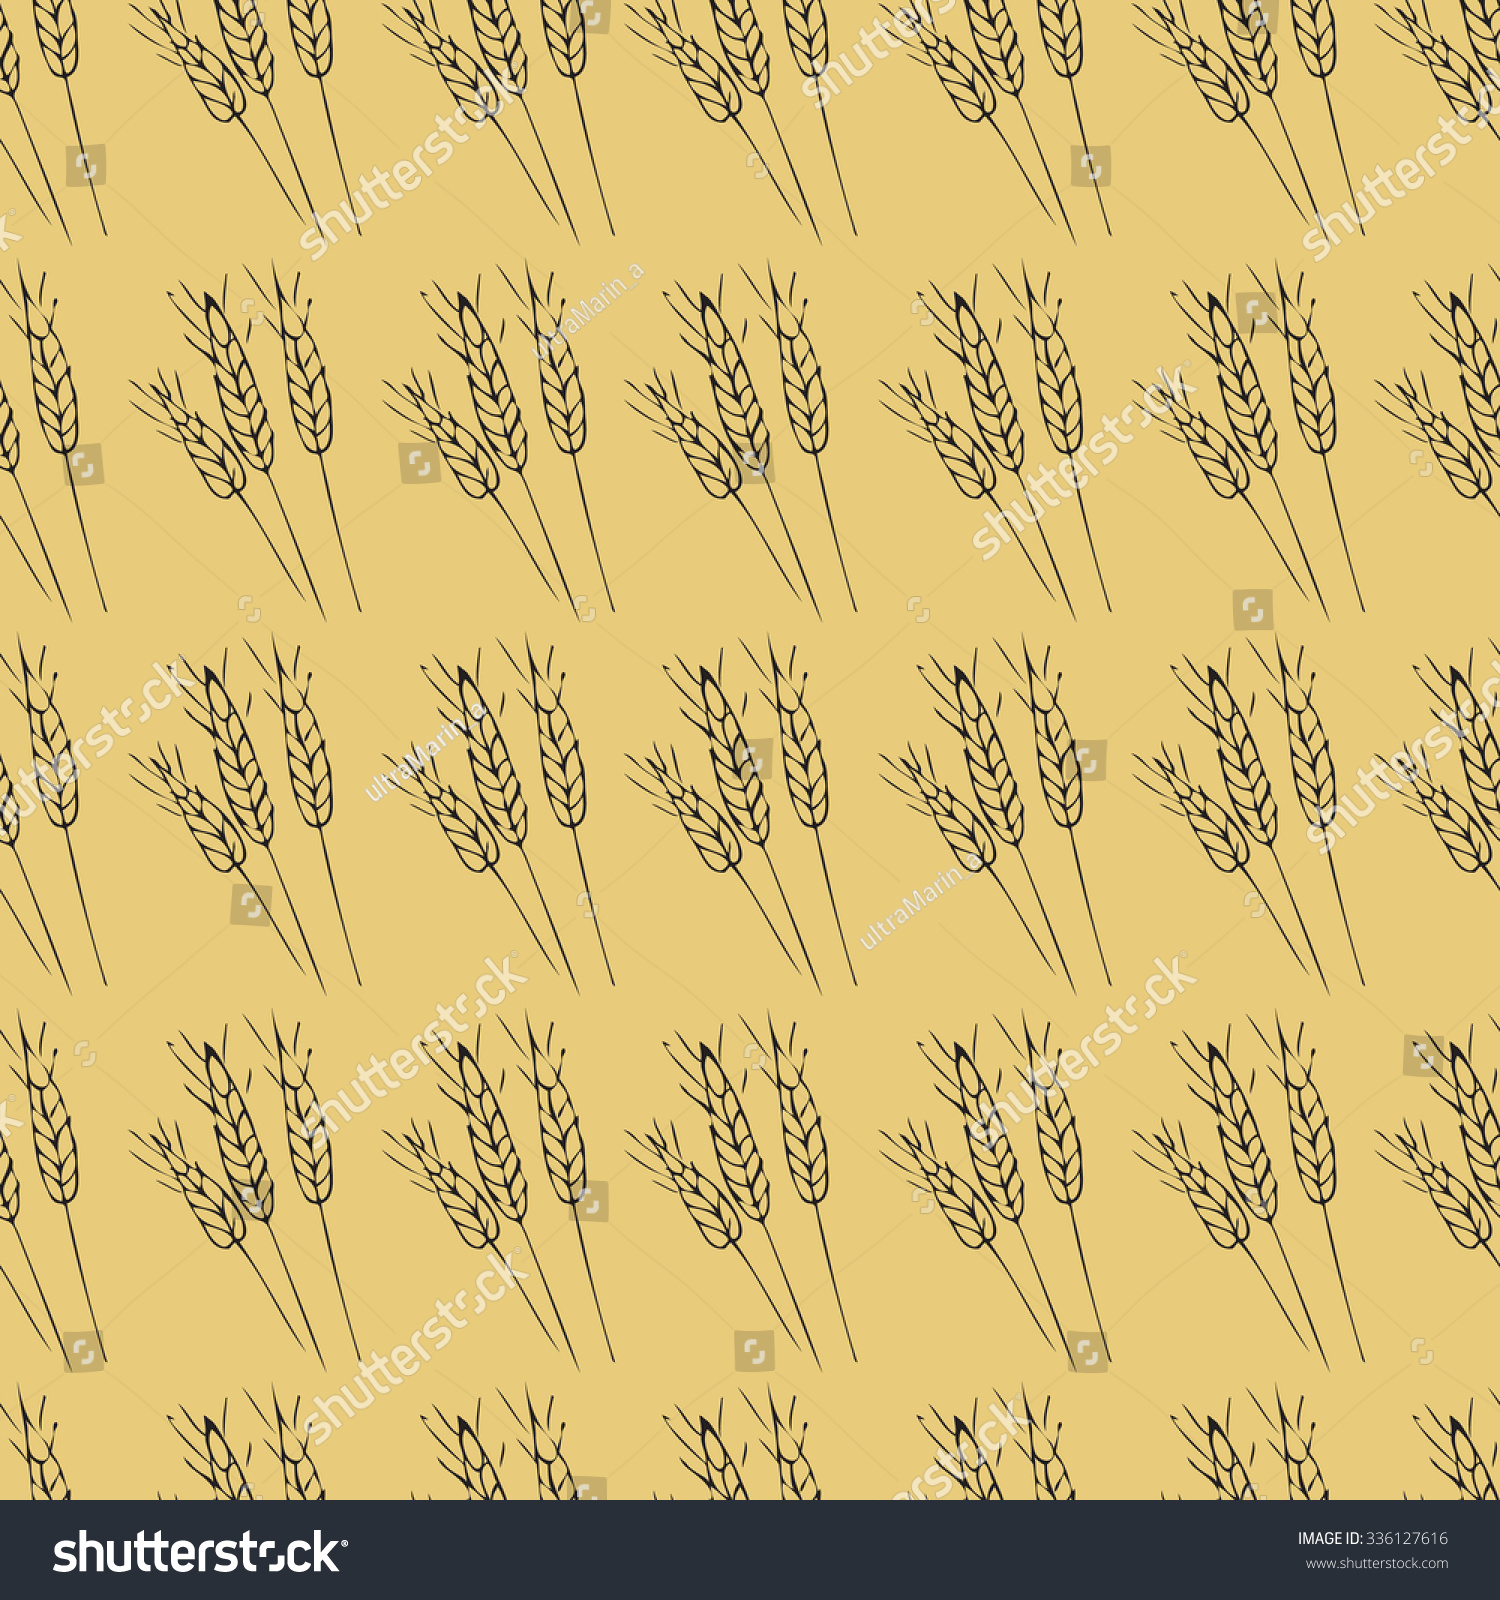 Seamless Wheat Pattern Hand Drawnvector Illustrationbakery Stock